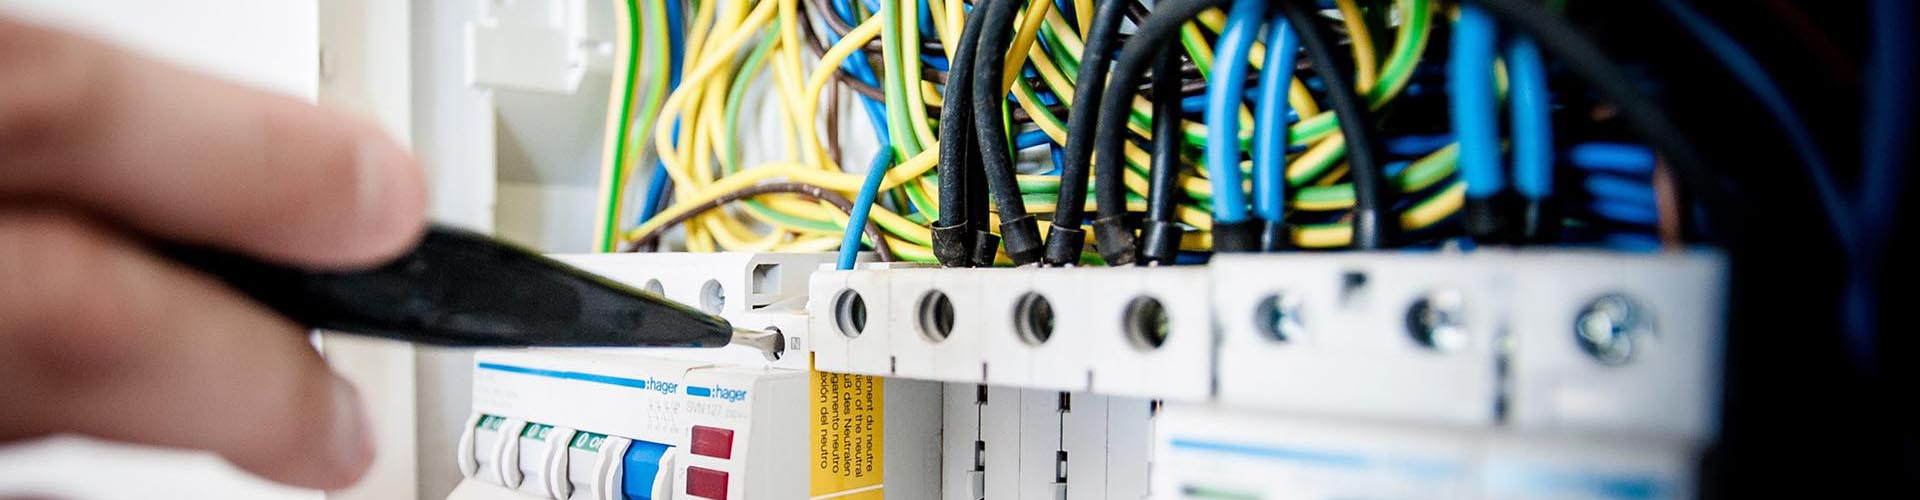 Surrey Smarthome Niceic Reistered Electricians For London Smart Home Wiring As Accredited Domestic Installers Are Well Placed To Undertake All The Usual Electrical Work Including